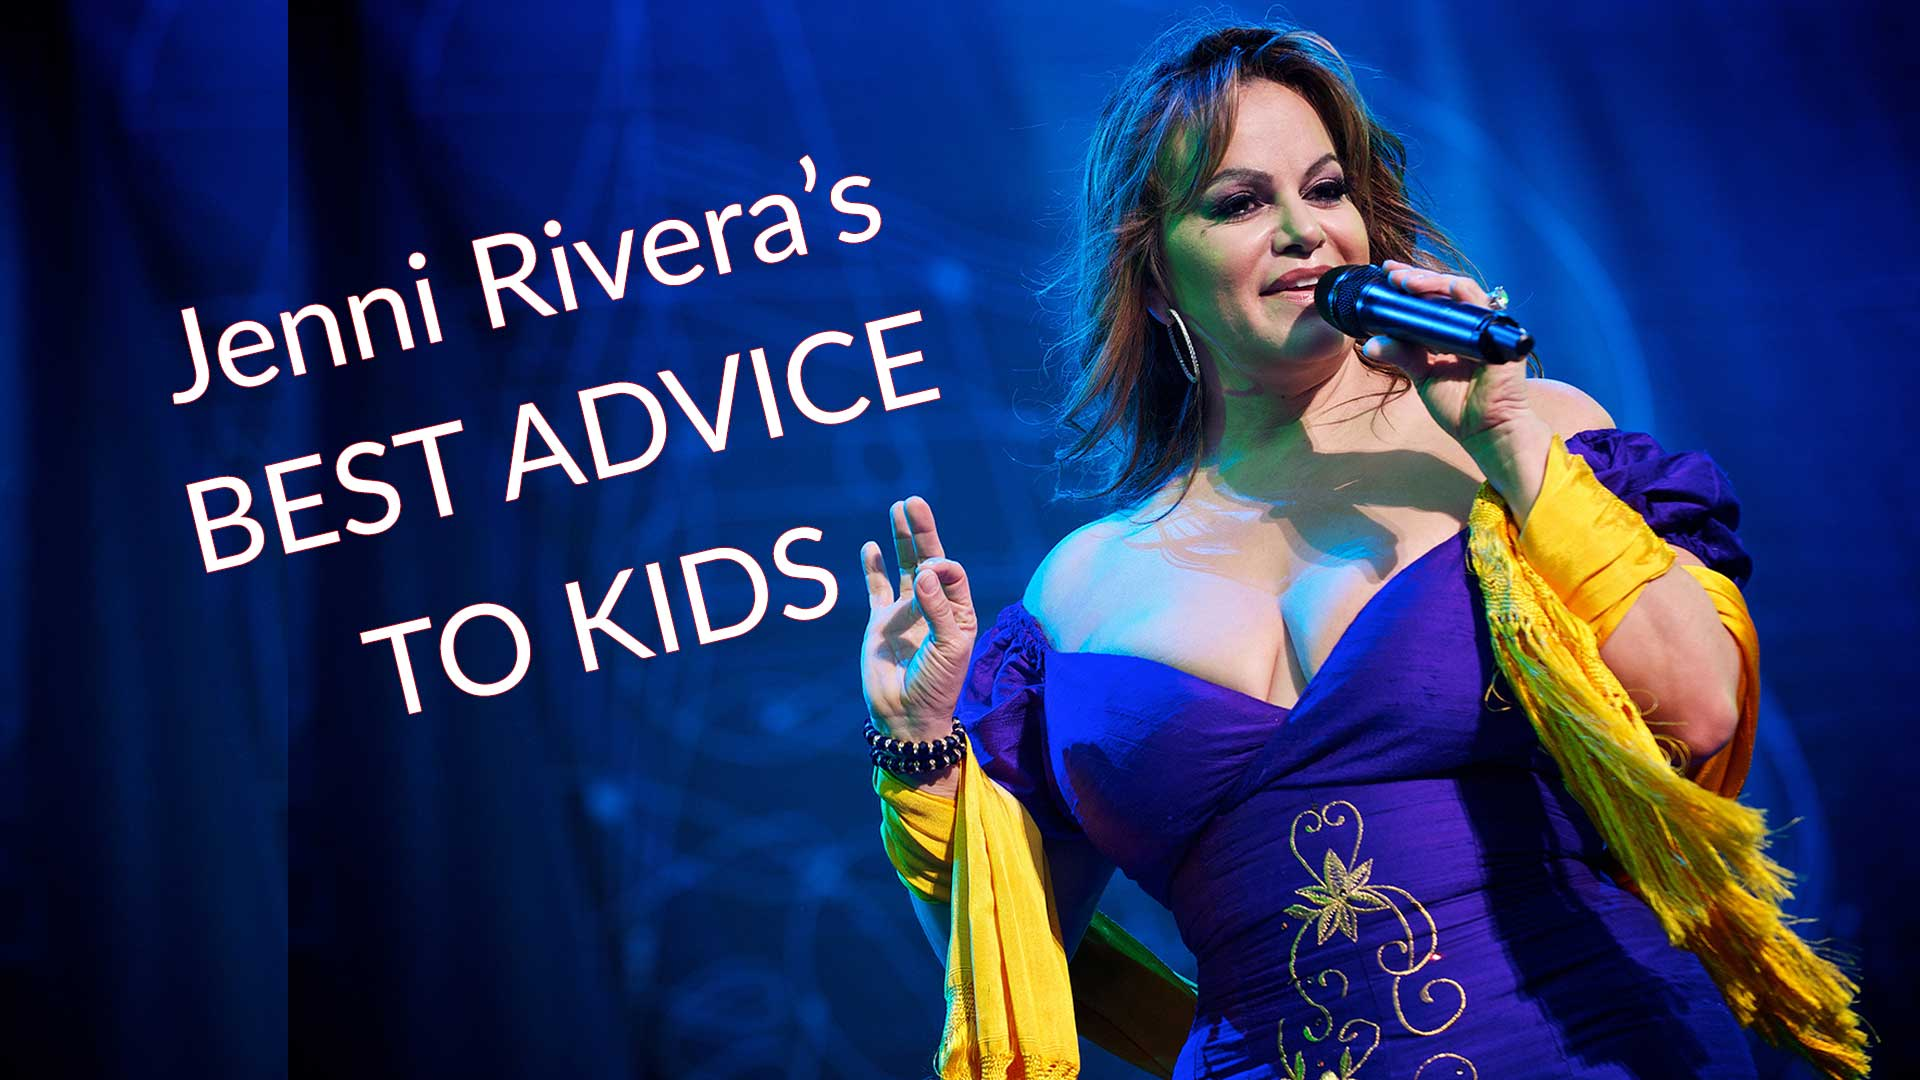 Mexican American singer Jenni Rivera best advice